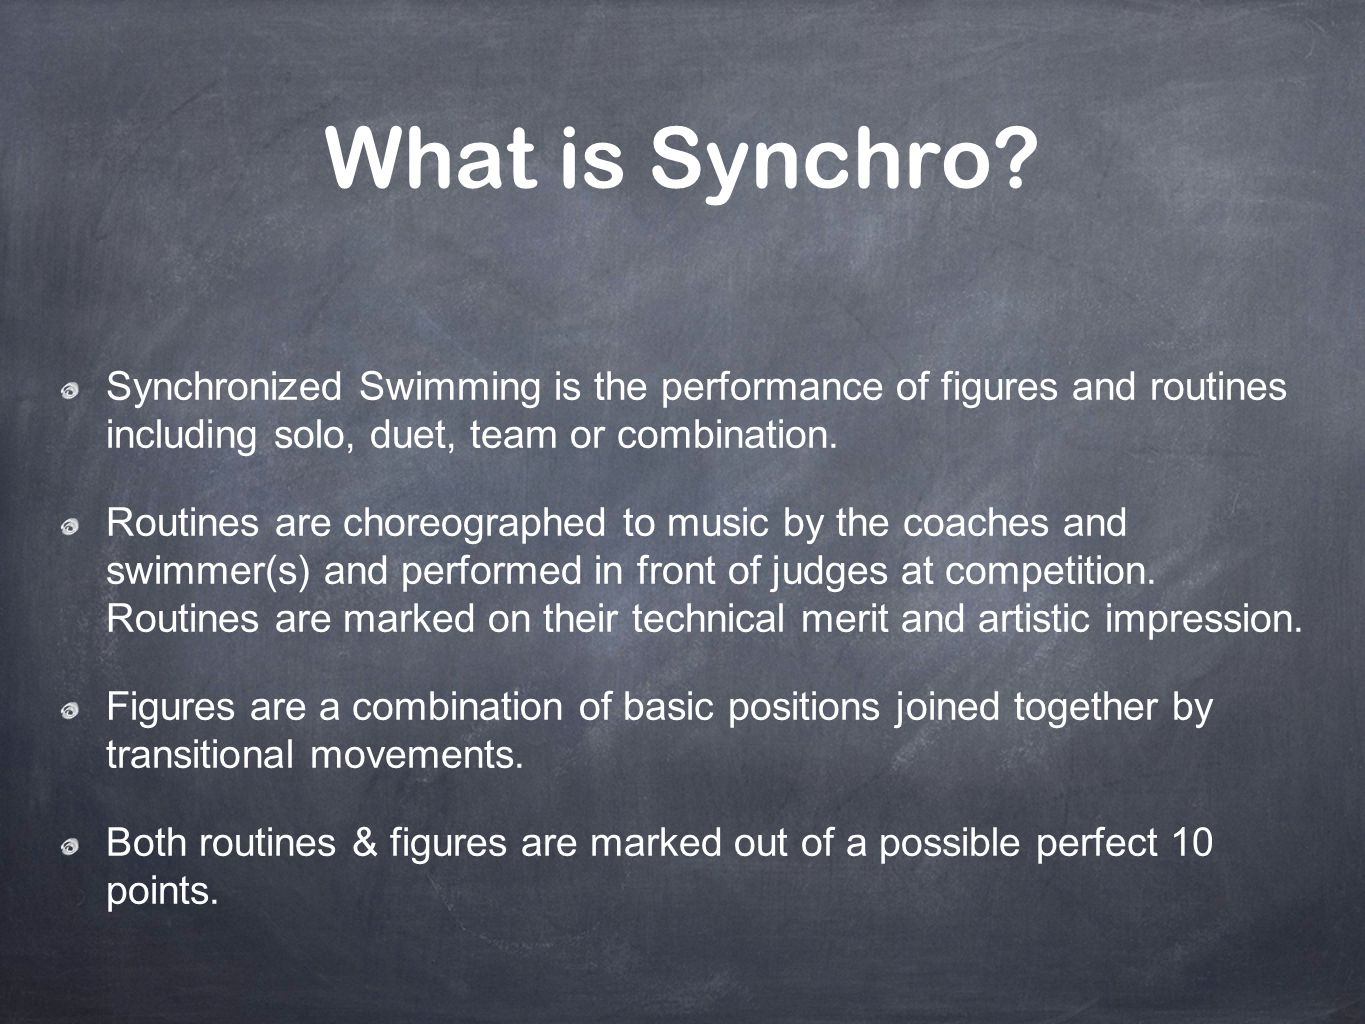 The Figures Meet Figures are the technical component of a synchro competition where a combination of basic positions are joined together by transitional movements Figures are not swum to music Only athletes 18&Under compete figures Each age group has their own set of unique figures that include 2 compulsory figures and 3 optional figure groups Each optional figure group has 2 figures